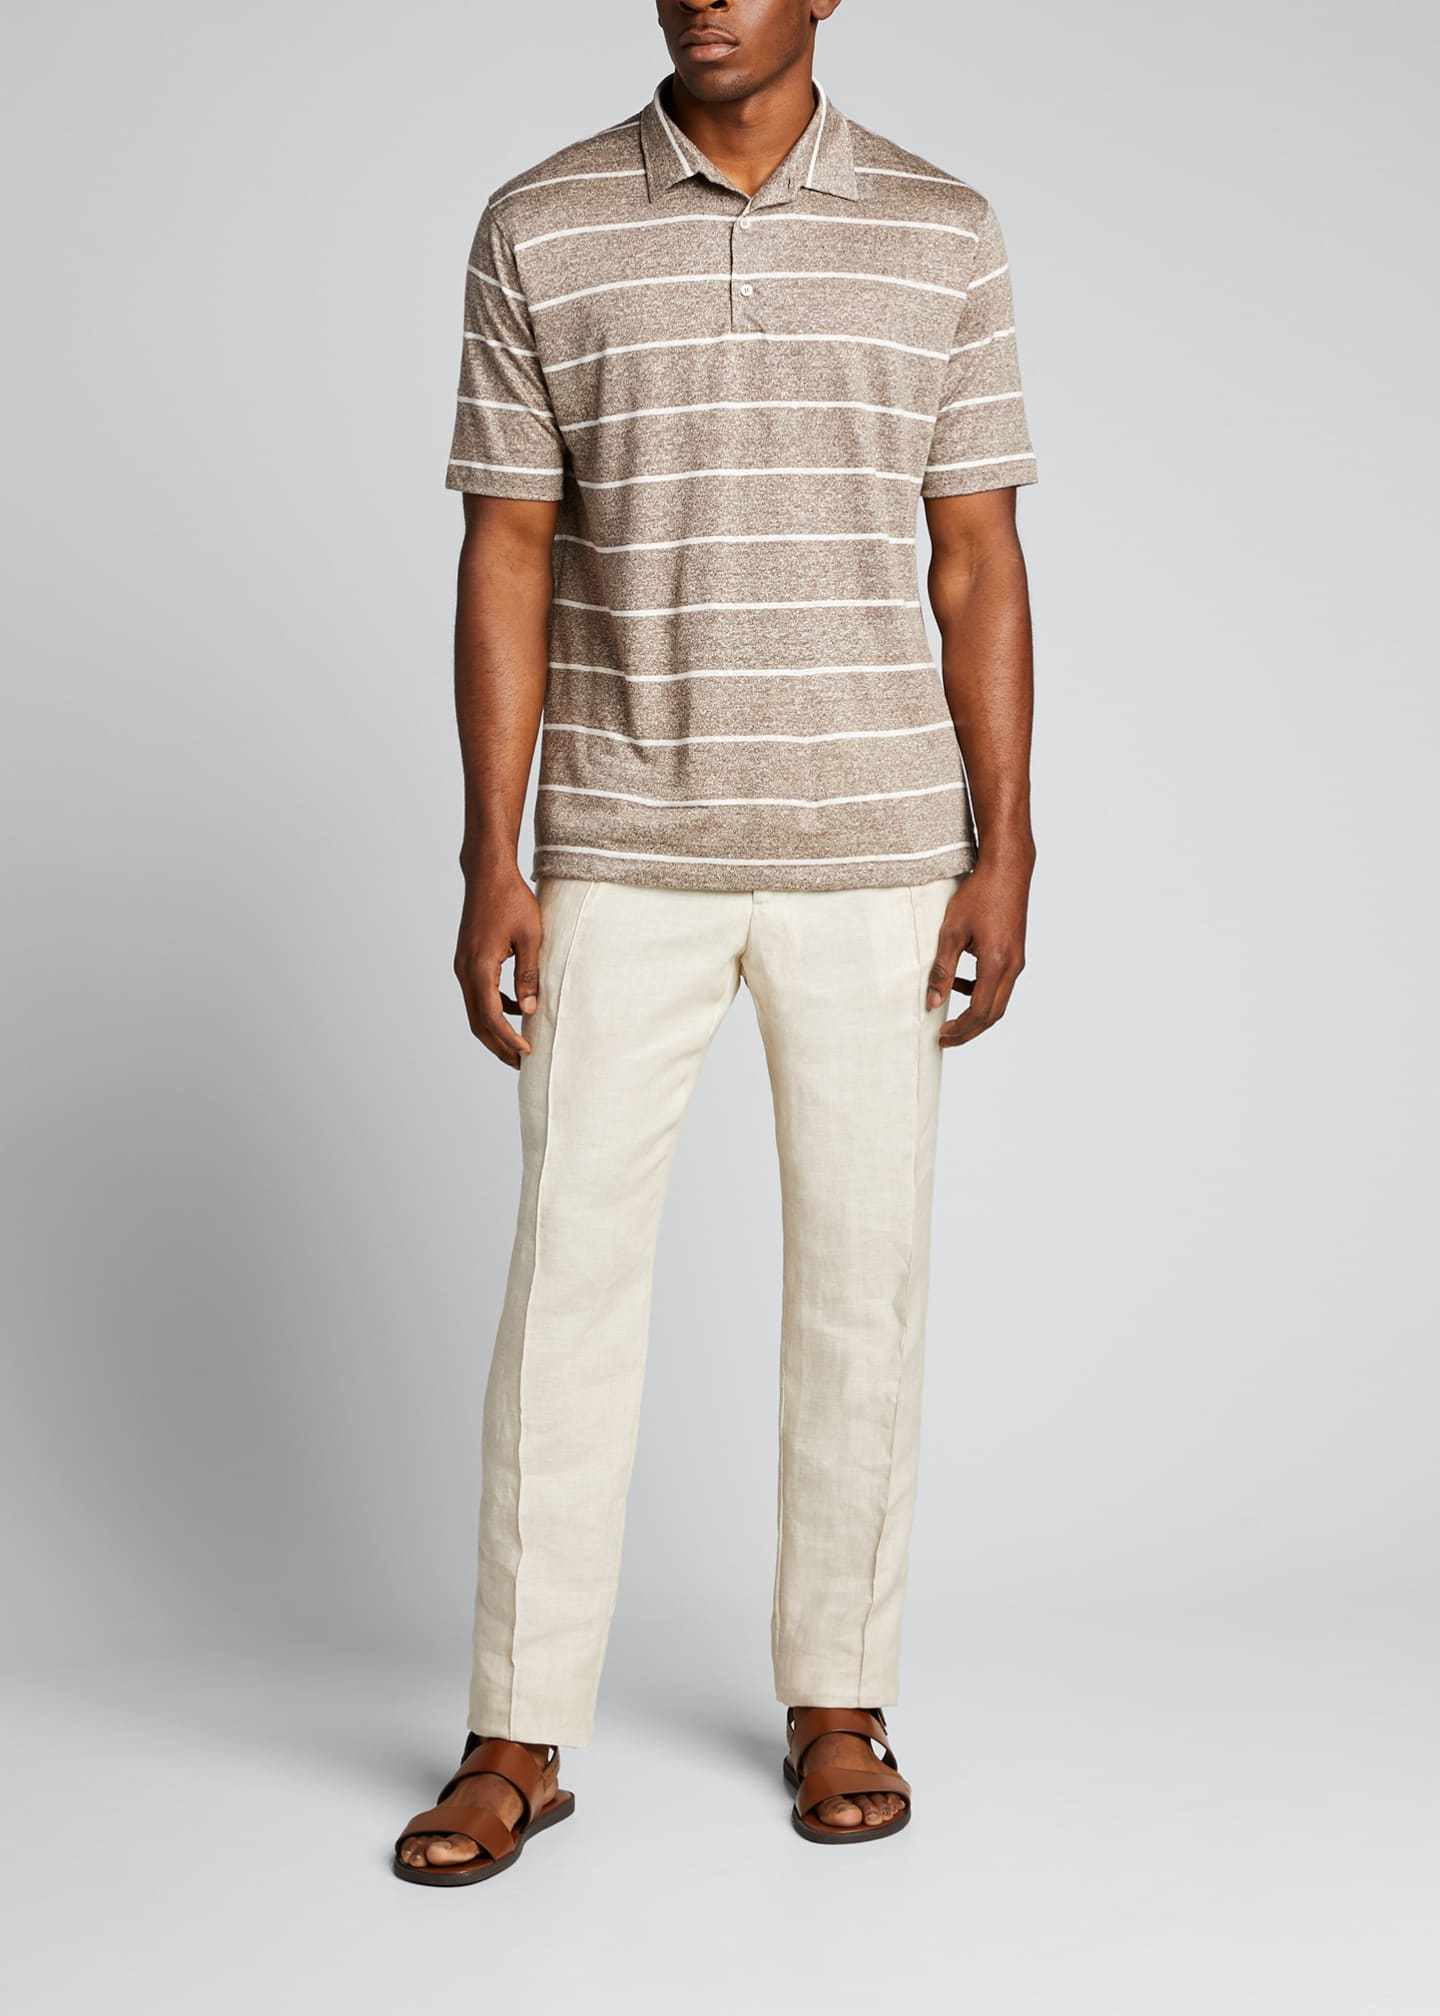 Image 1 of 4: Men's Striped Linen-Effect Polo Shirt